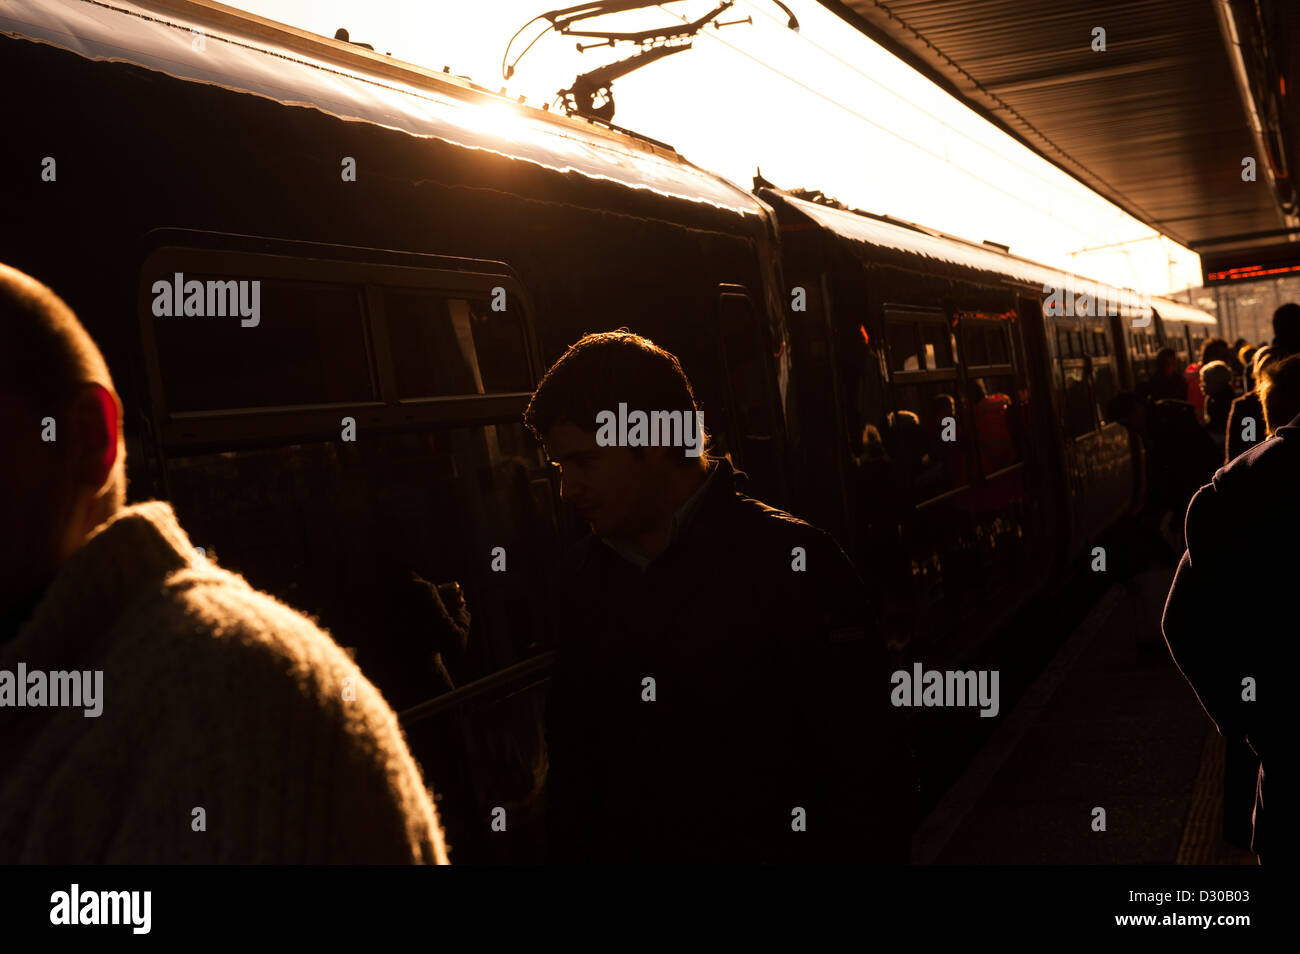 Silhouettes of passengers walking along a busy railway station platform in England. - Stock Image